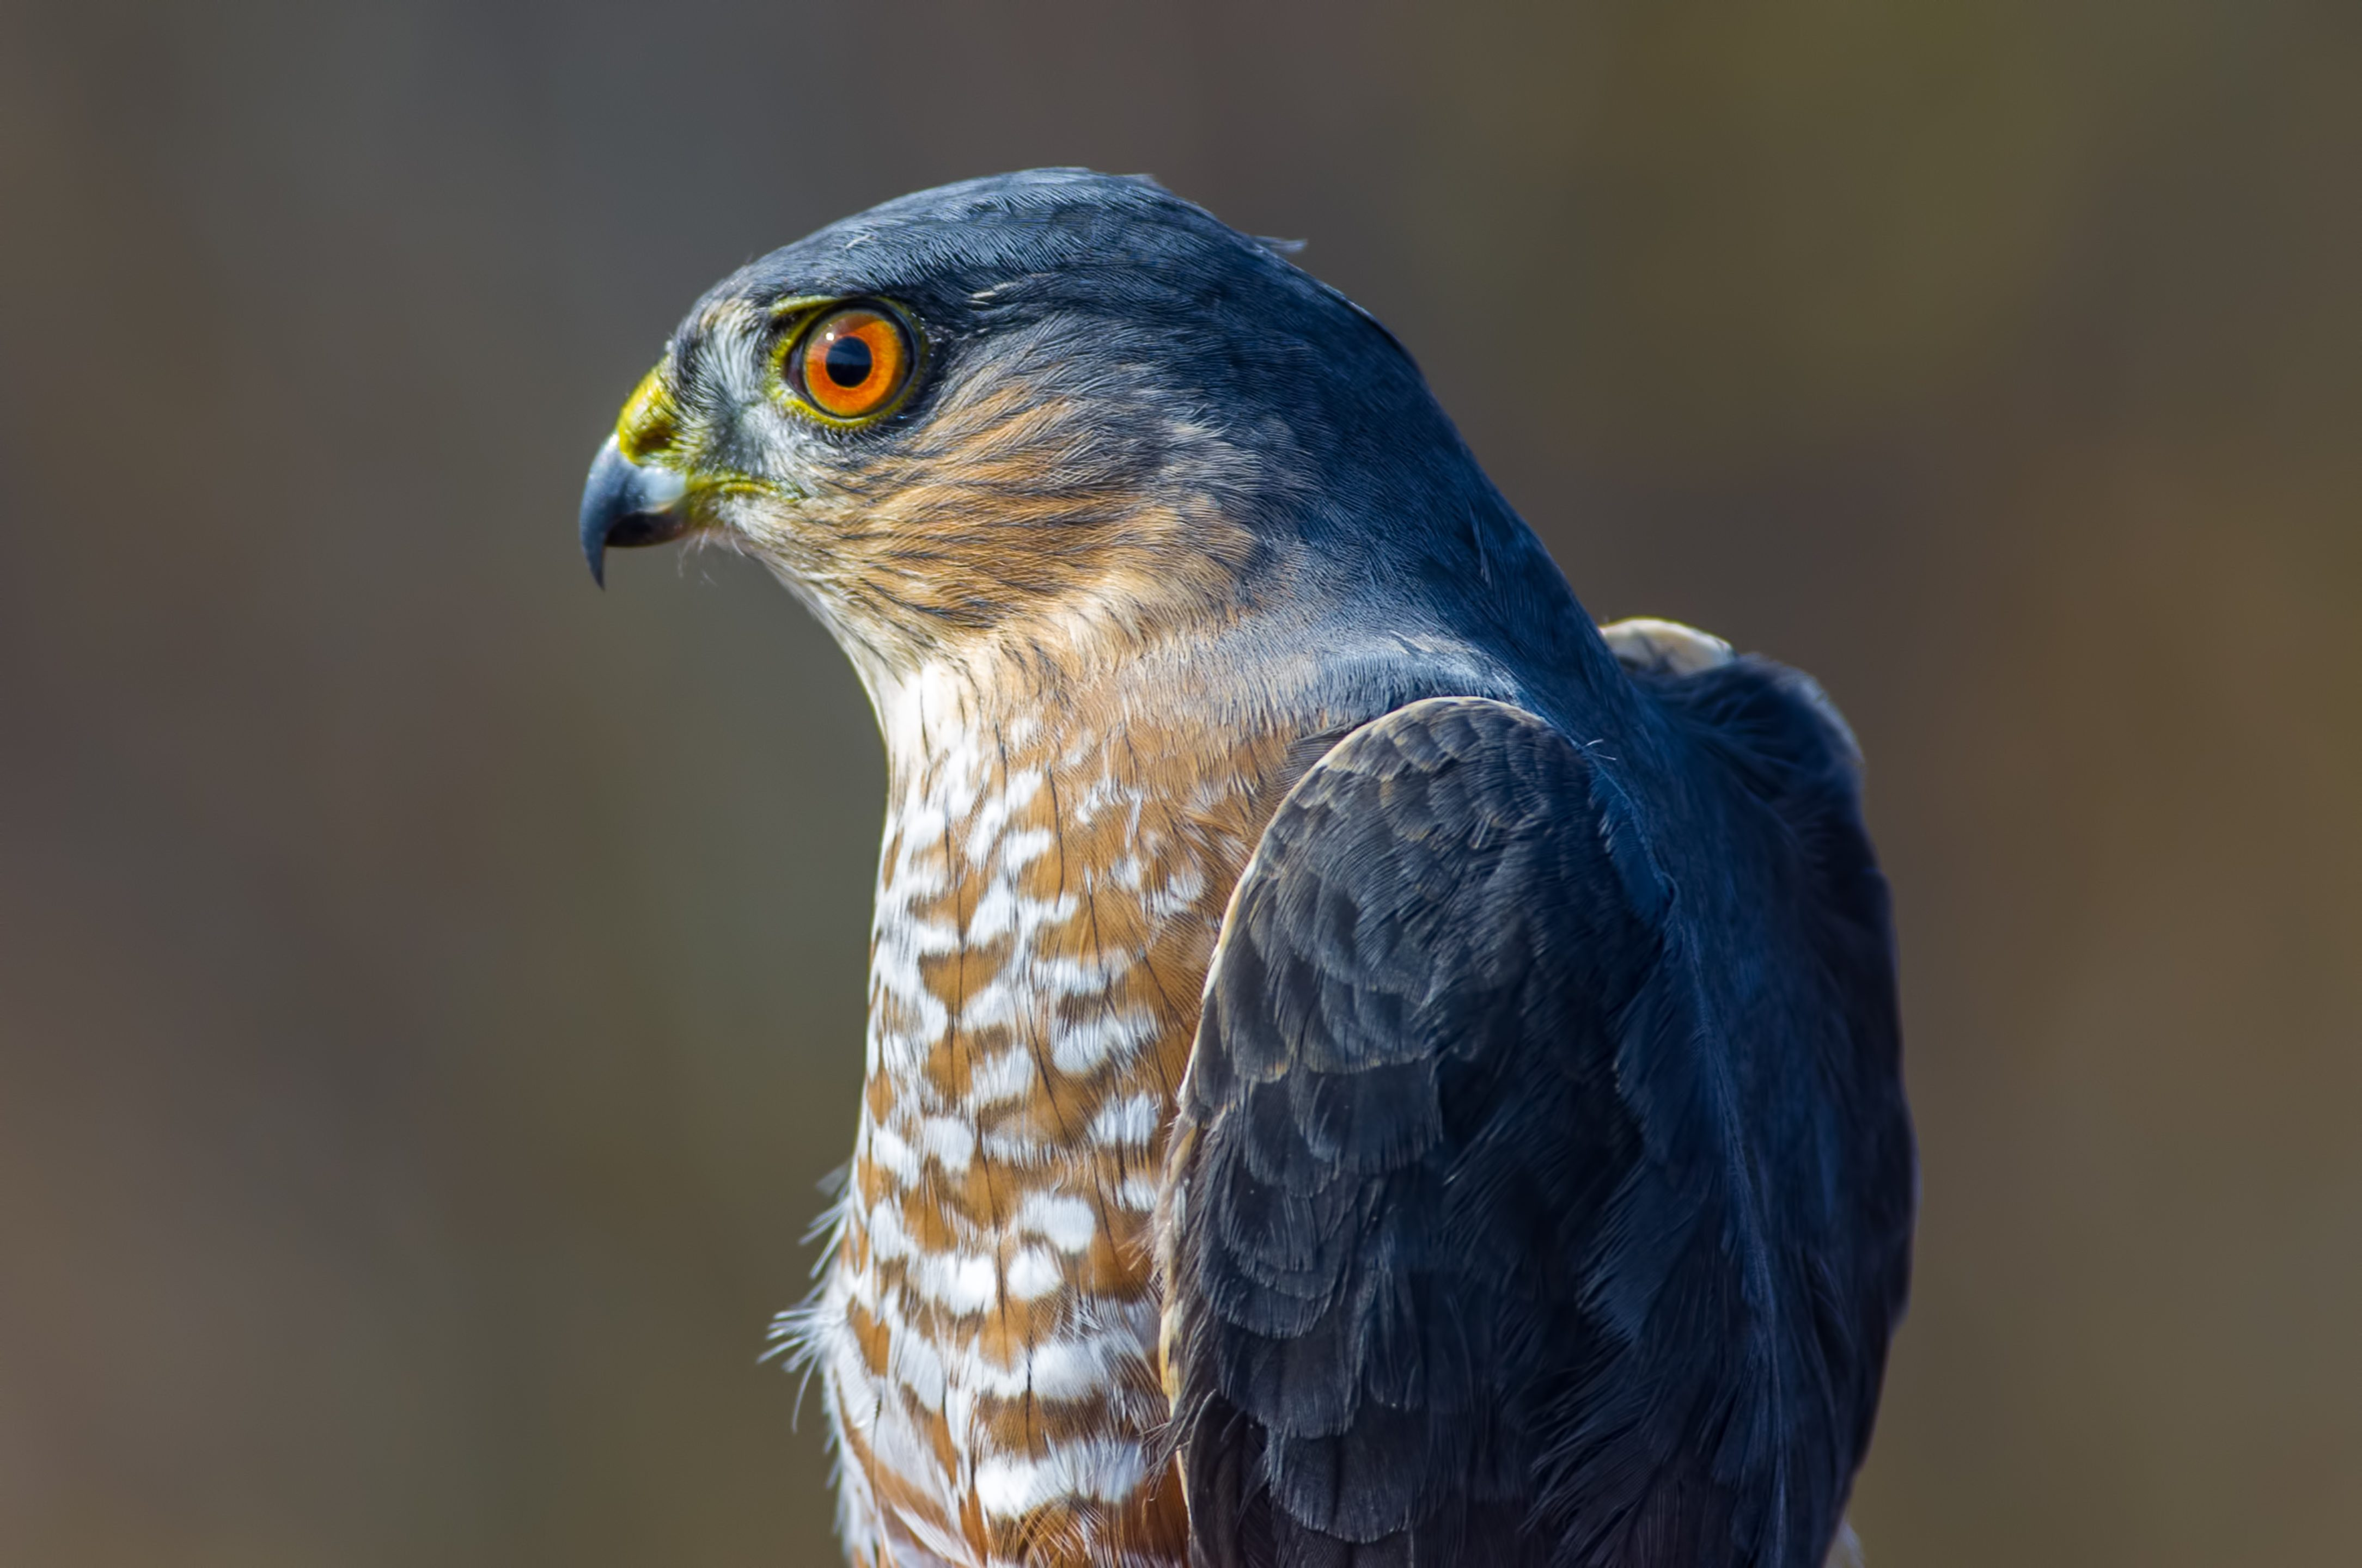 Sharp-shinned hawk portrait taken during Fall bird migrations at Hawk Ridge Bird Observatory in Duluth, Minnesota